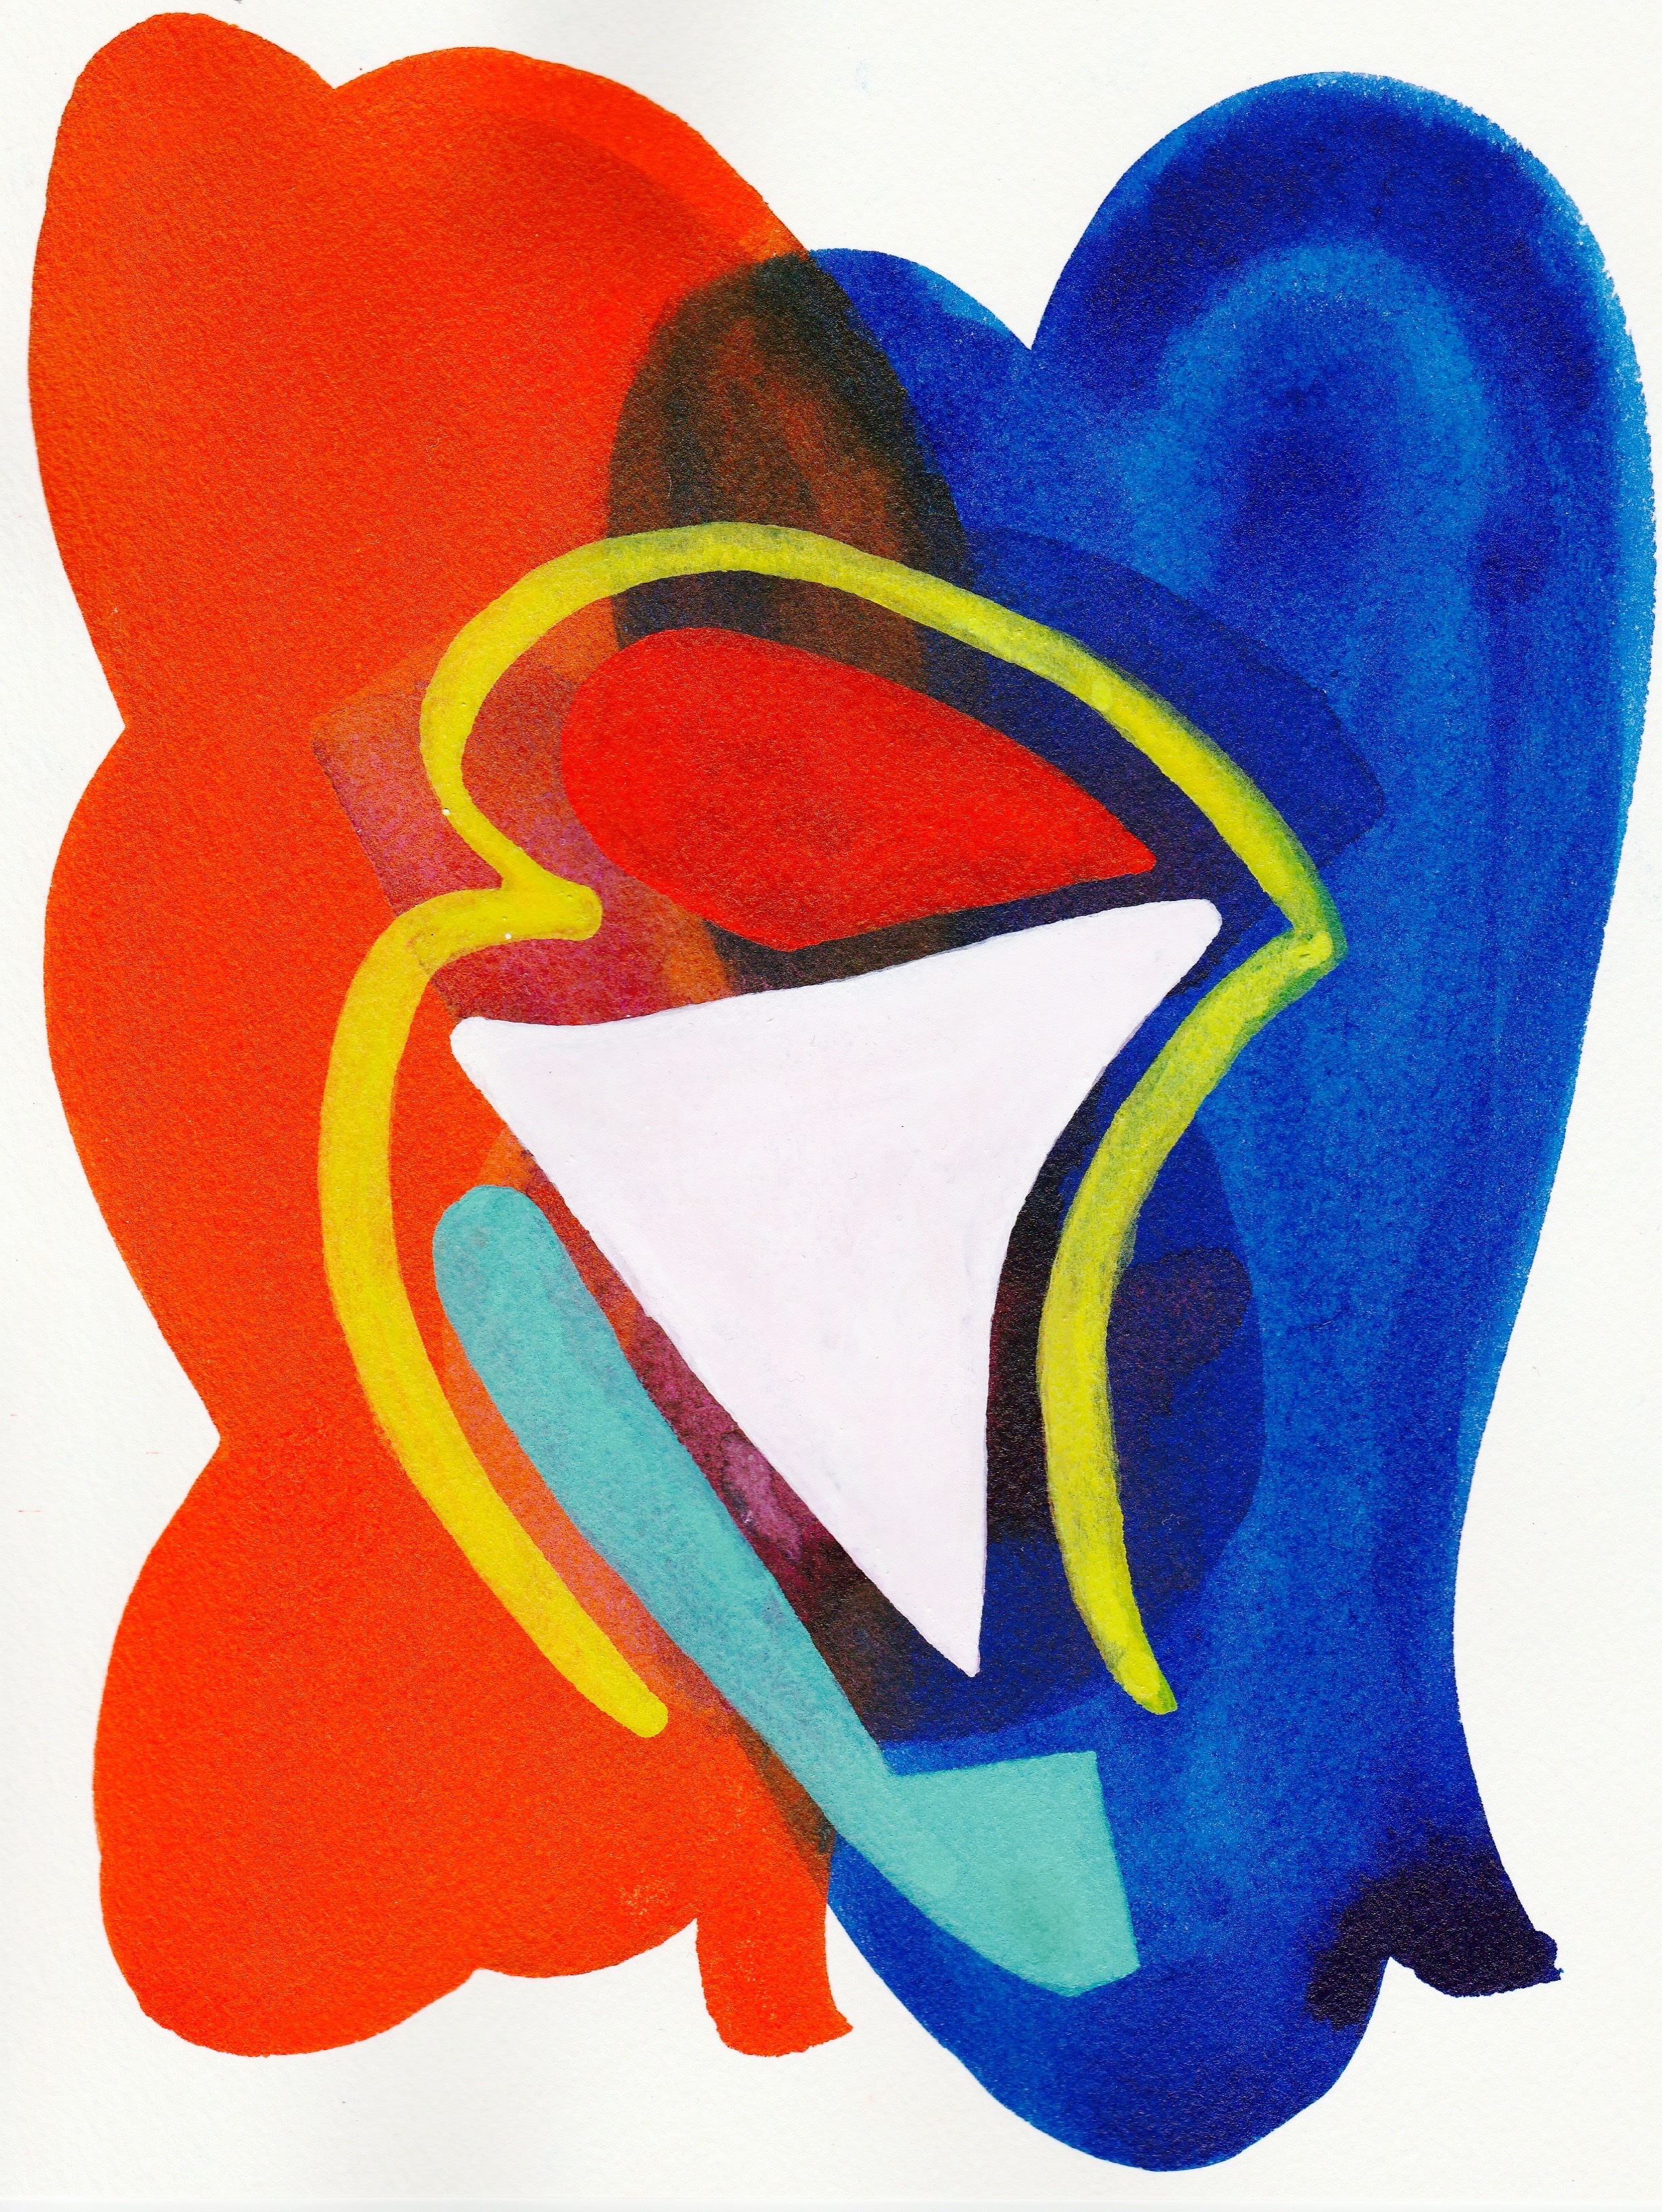 Shape-Up #16   2017  Watercolor, Guache  8.5 x 11 inches